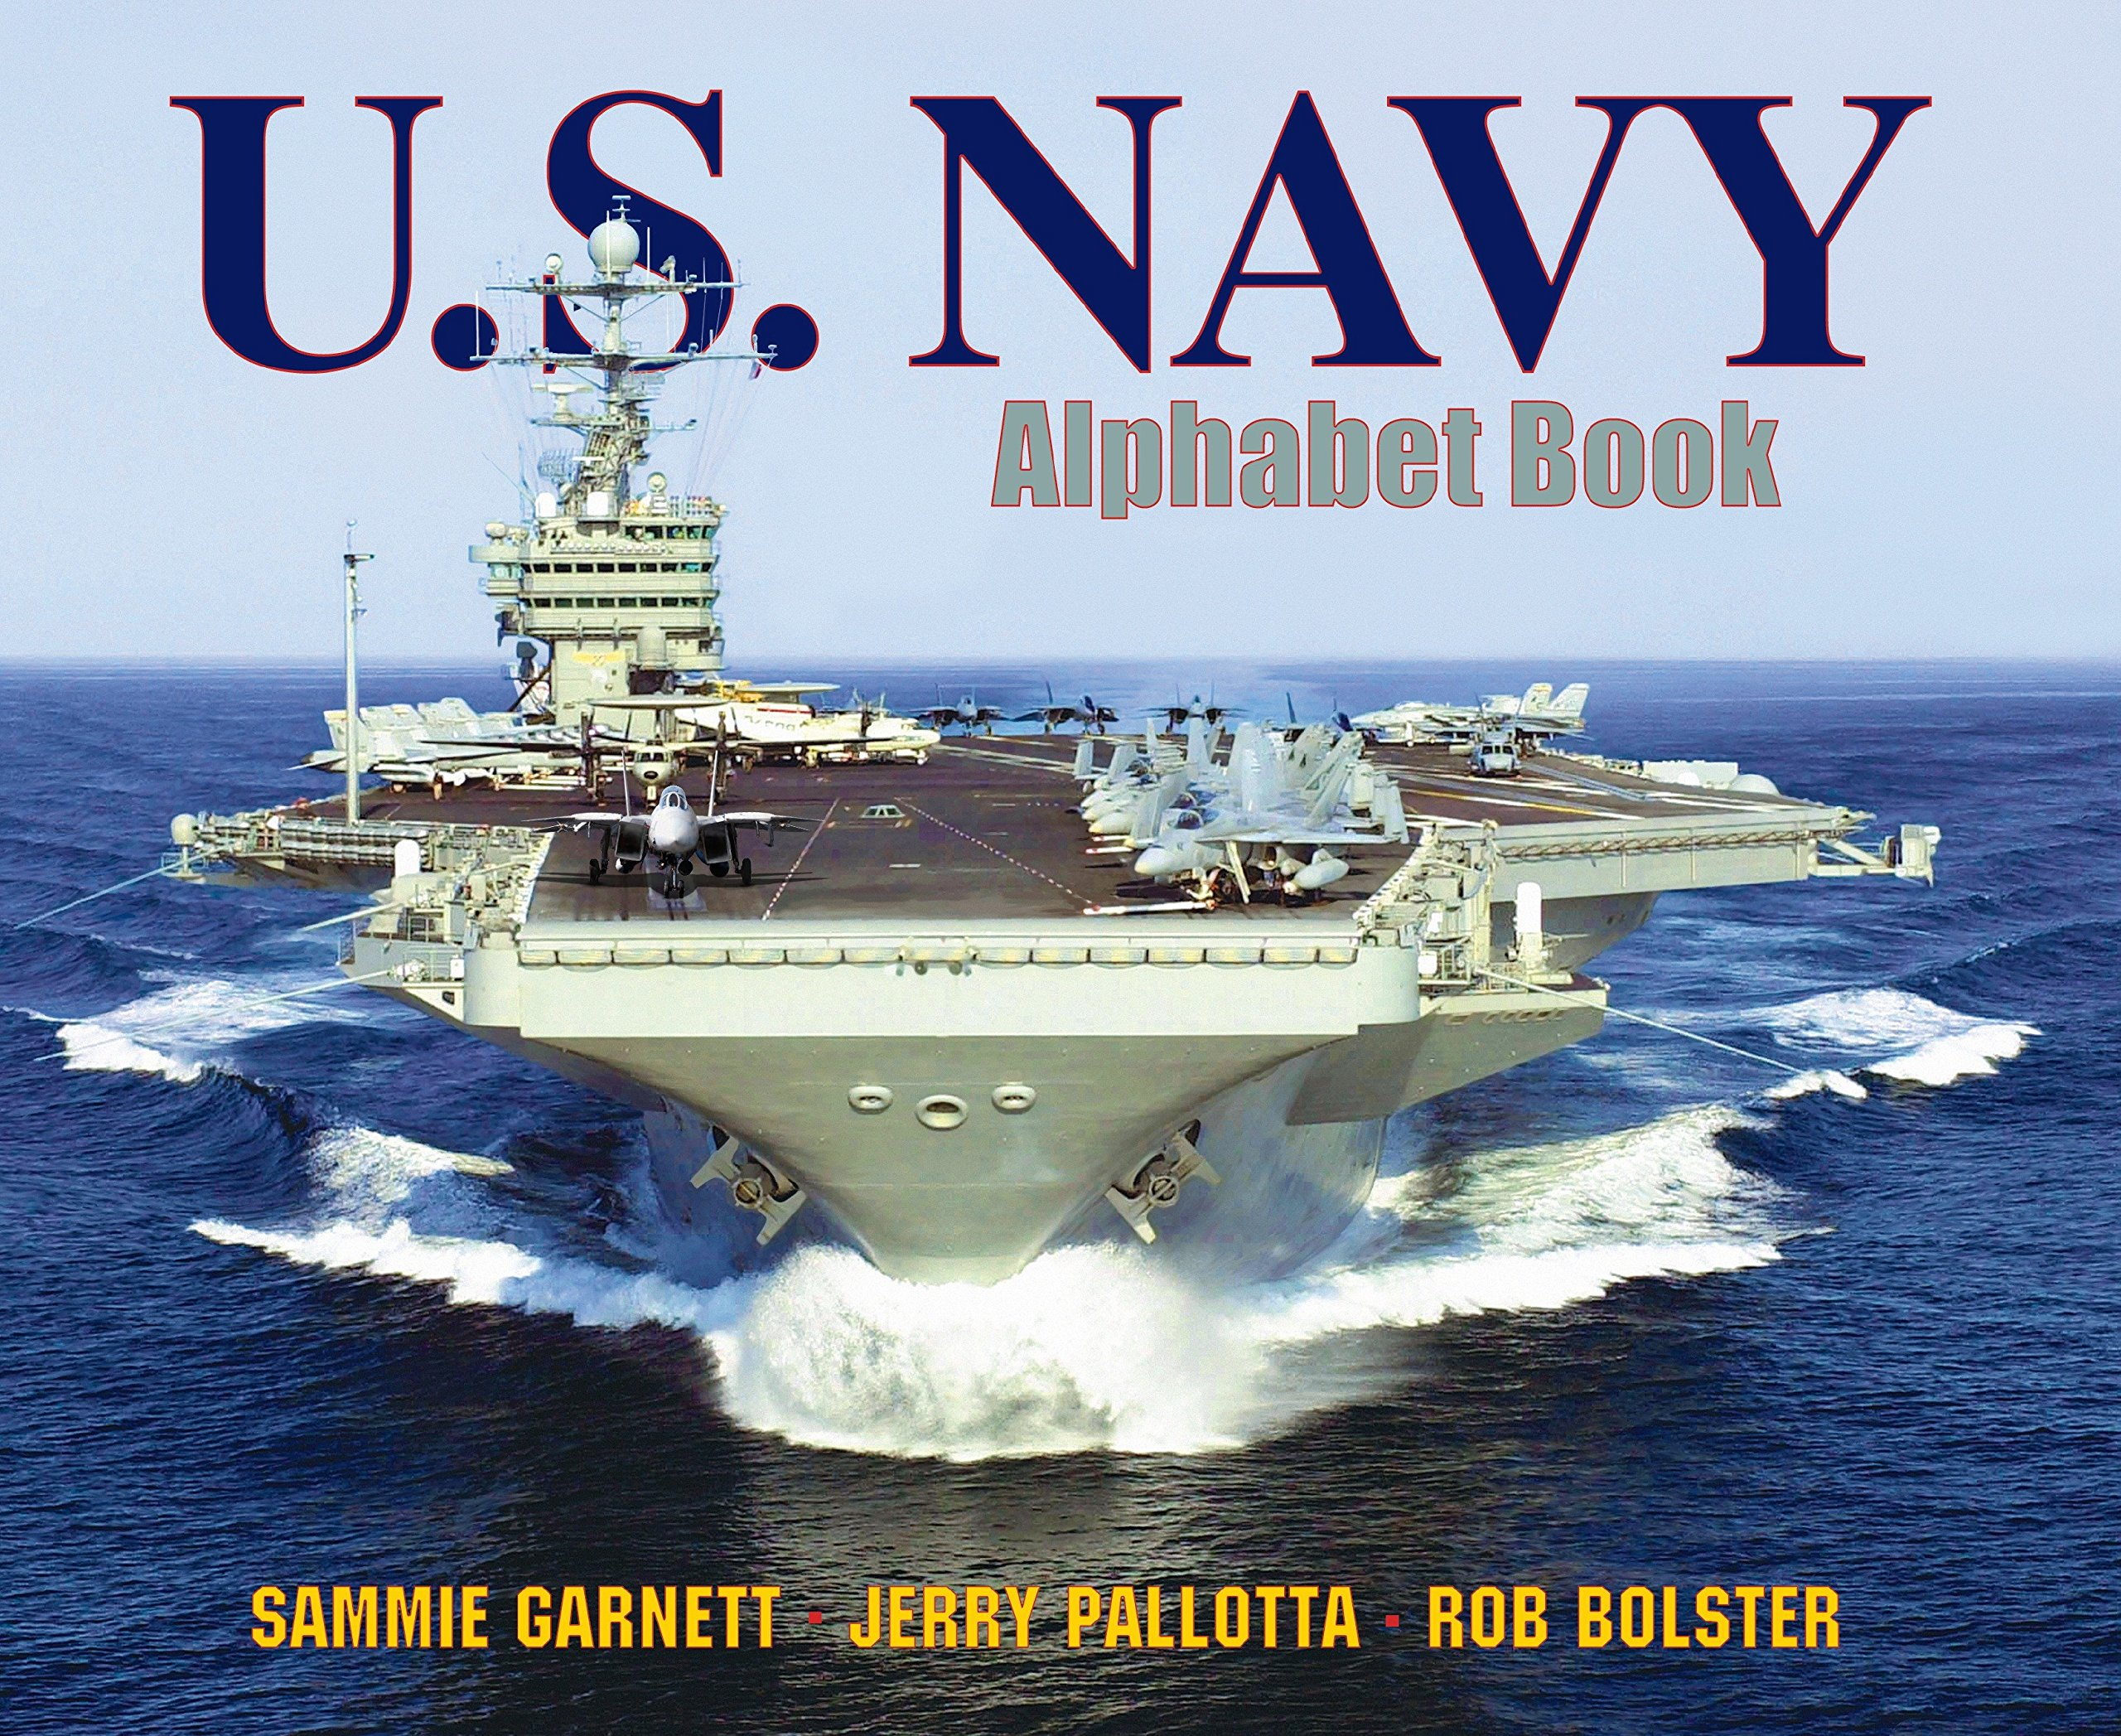 U S Navy Alphabet Book Jerry Pallotta S Alphabet Books Pallotta Jerry Garnett Sammie Bolster Rob 9781570915871 Amazon Com Books